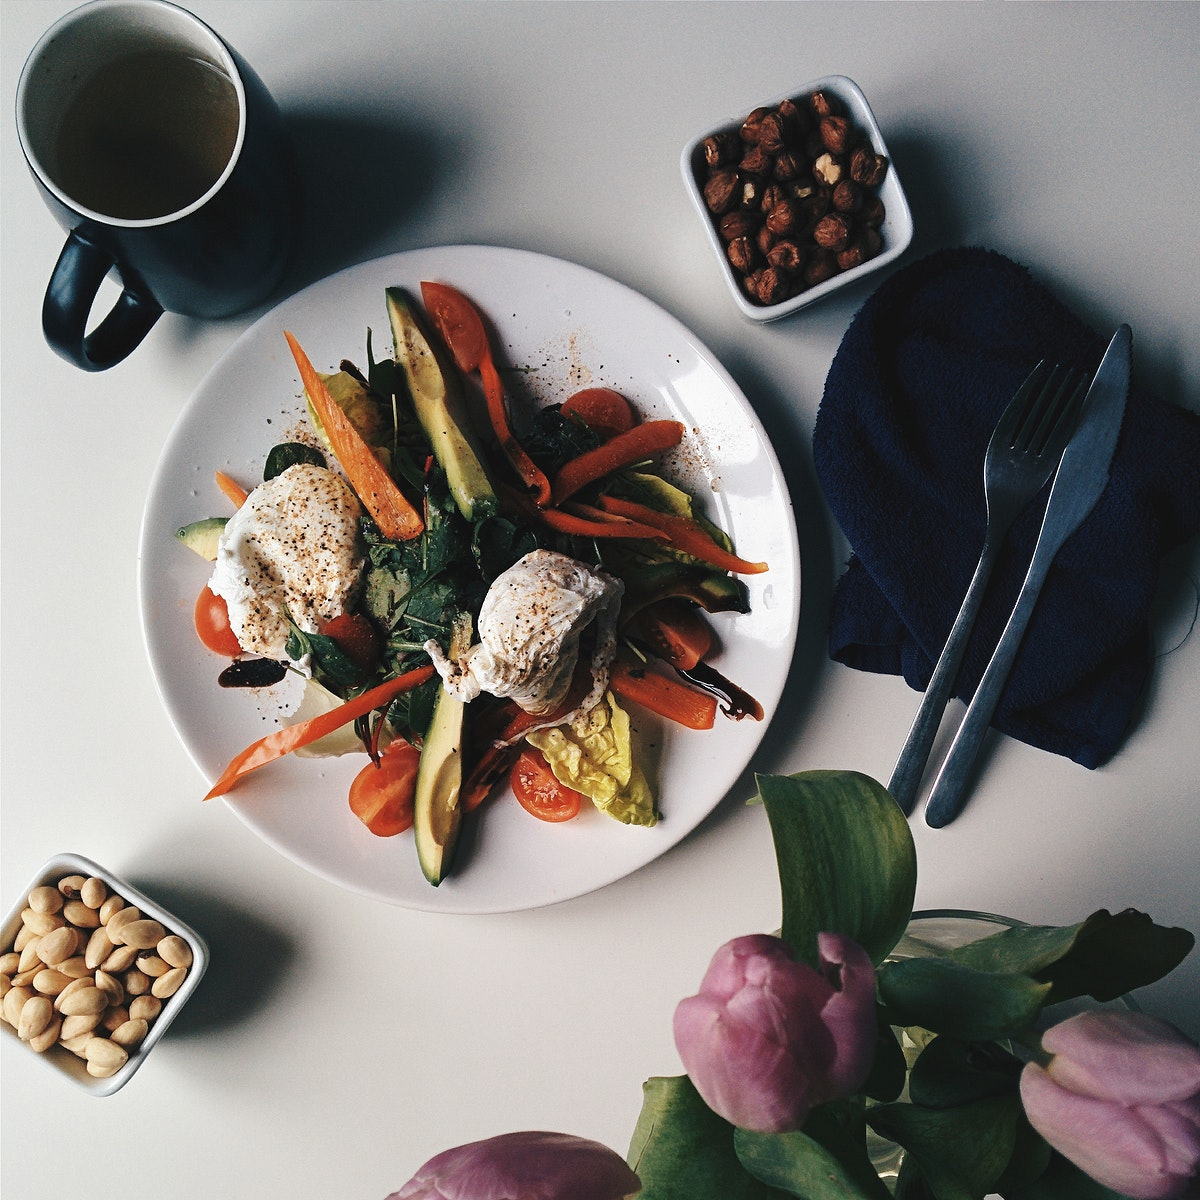 Paleo breakfast with vegetables, avocado and nuts